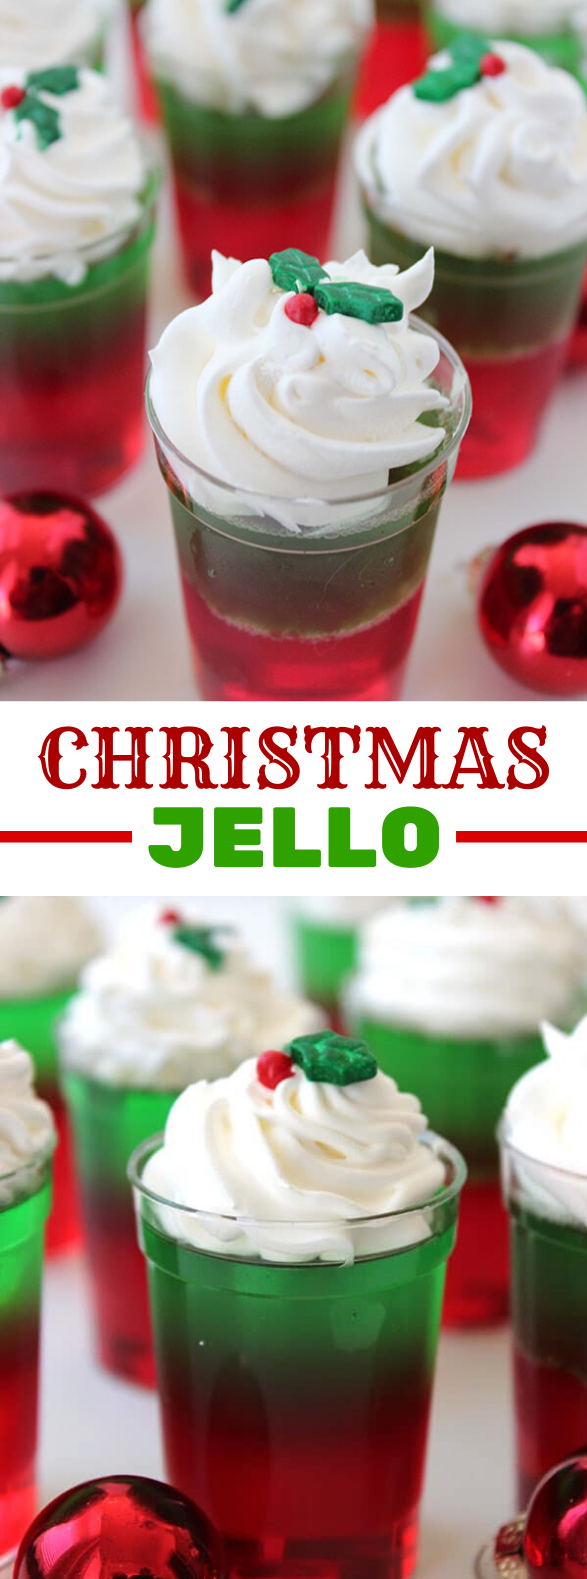 CHRISTMAS JELLO #desserts #simplerecipes